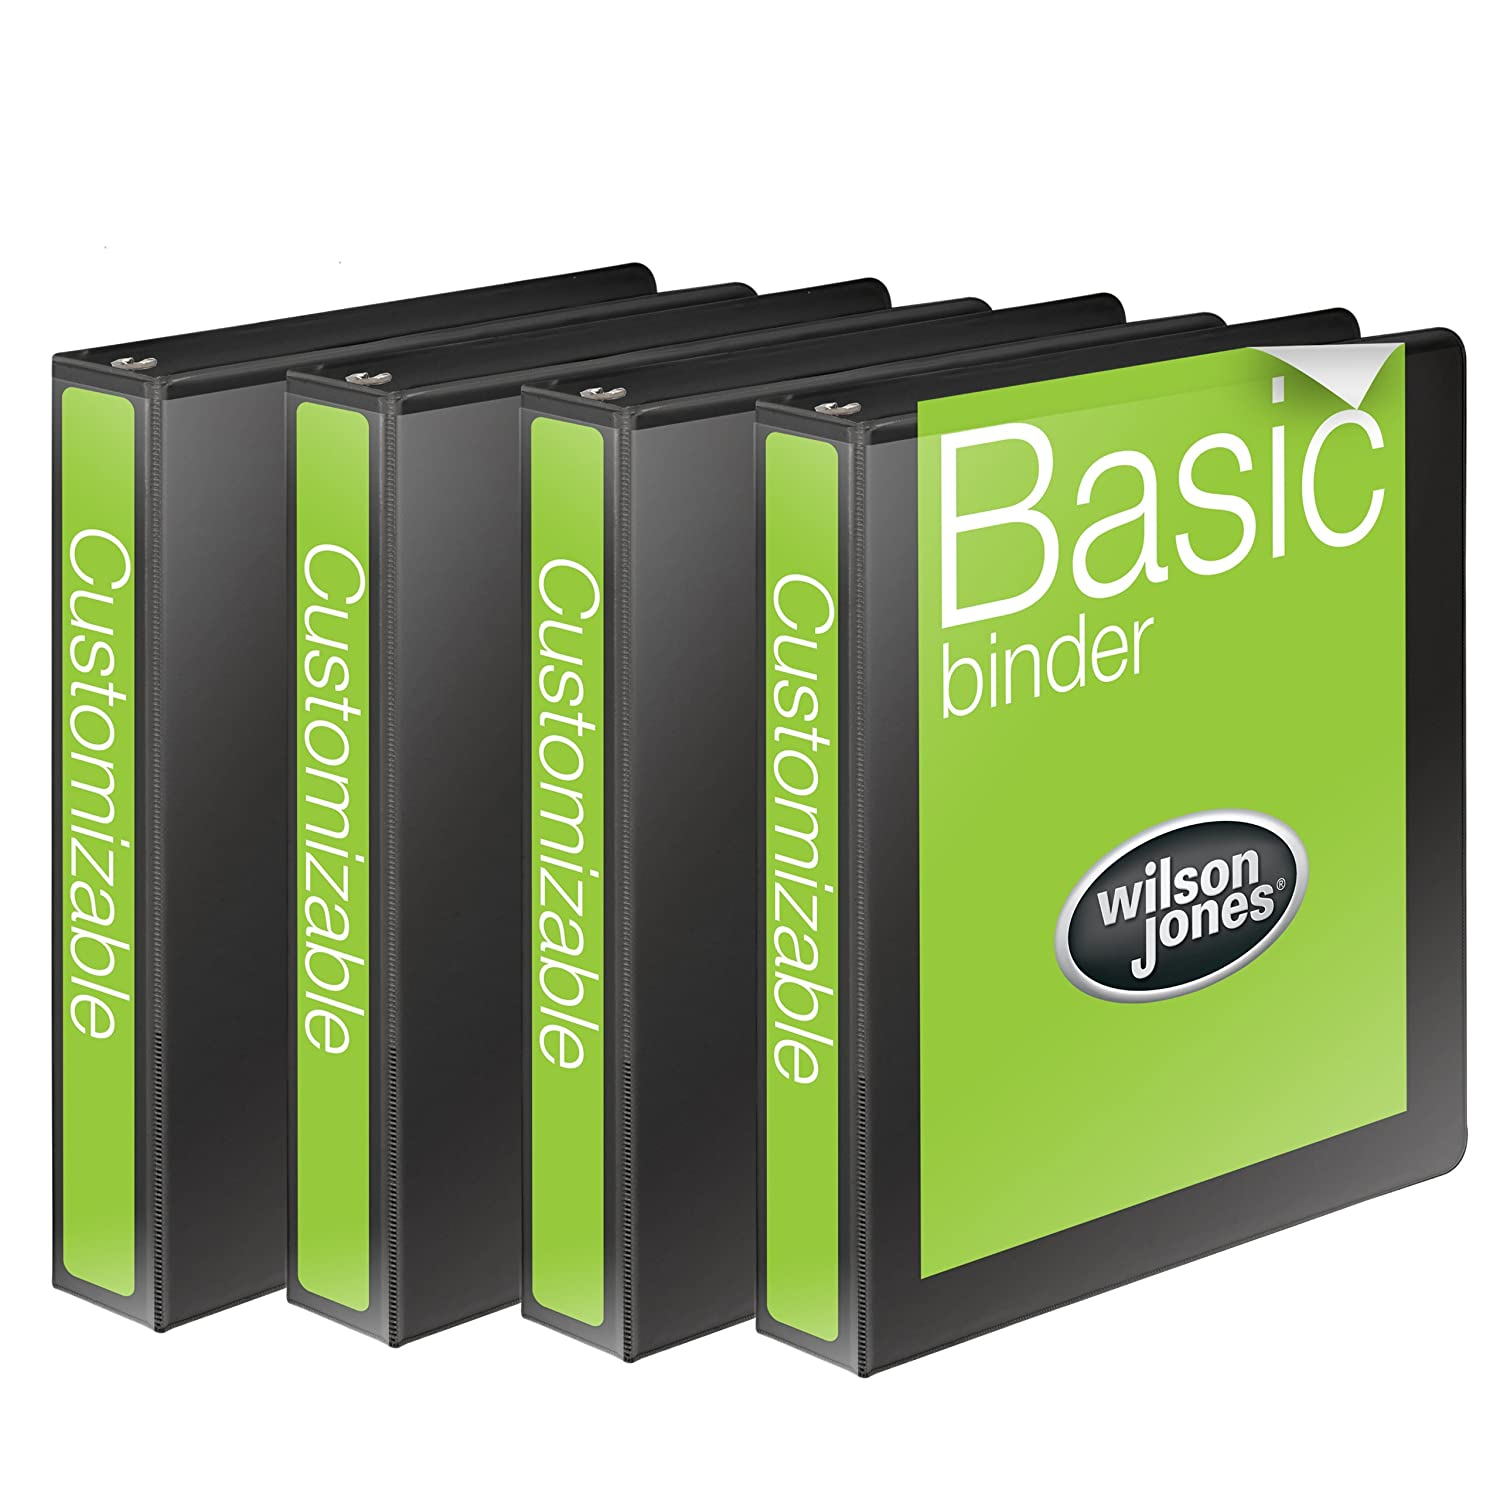 Wilson Jones 1 Inch 3 Ring Binder, Basic Round Ring View Binder, Black, 4 Pack